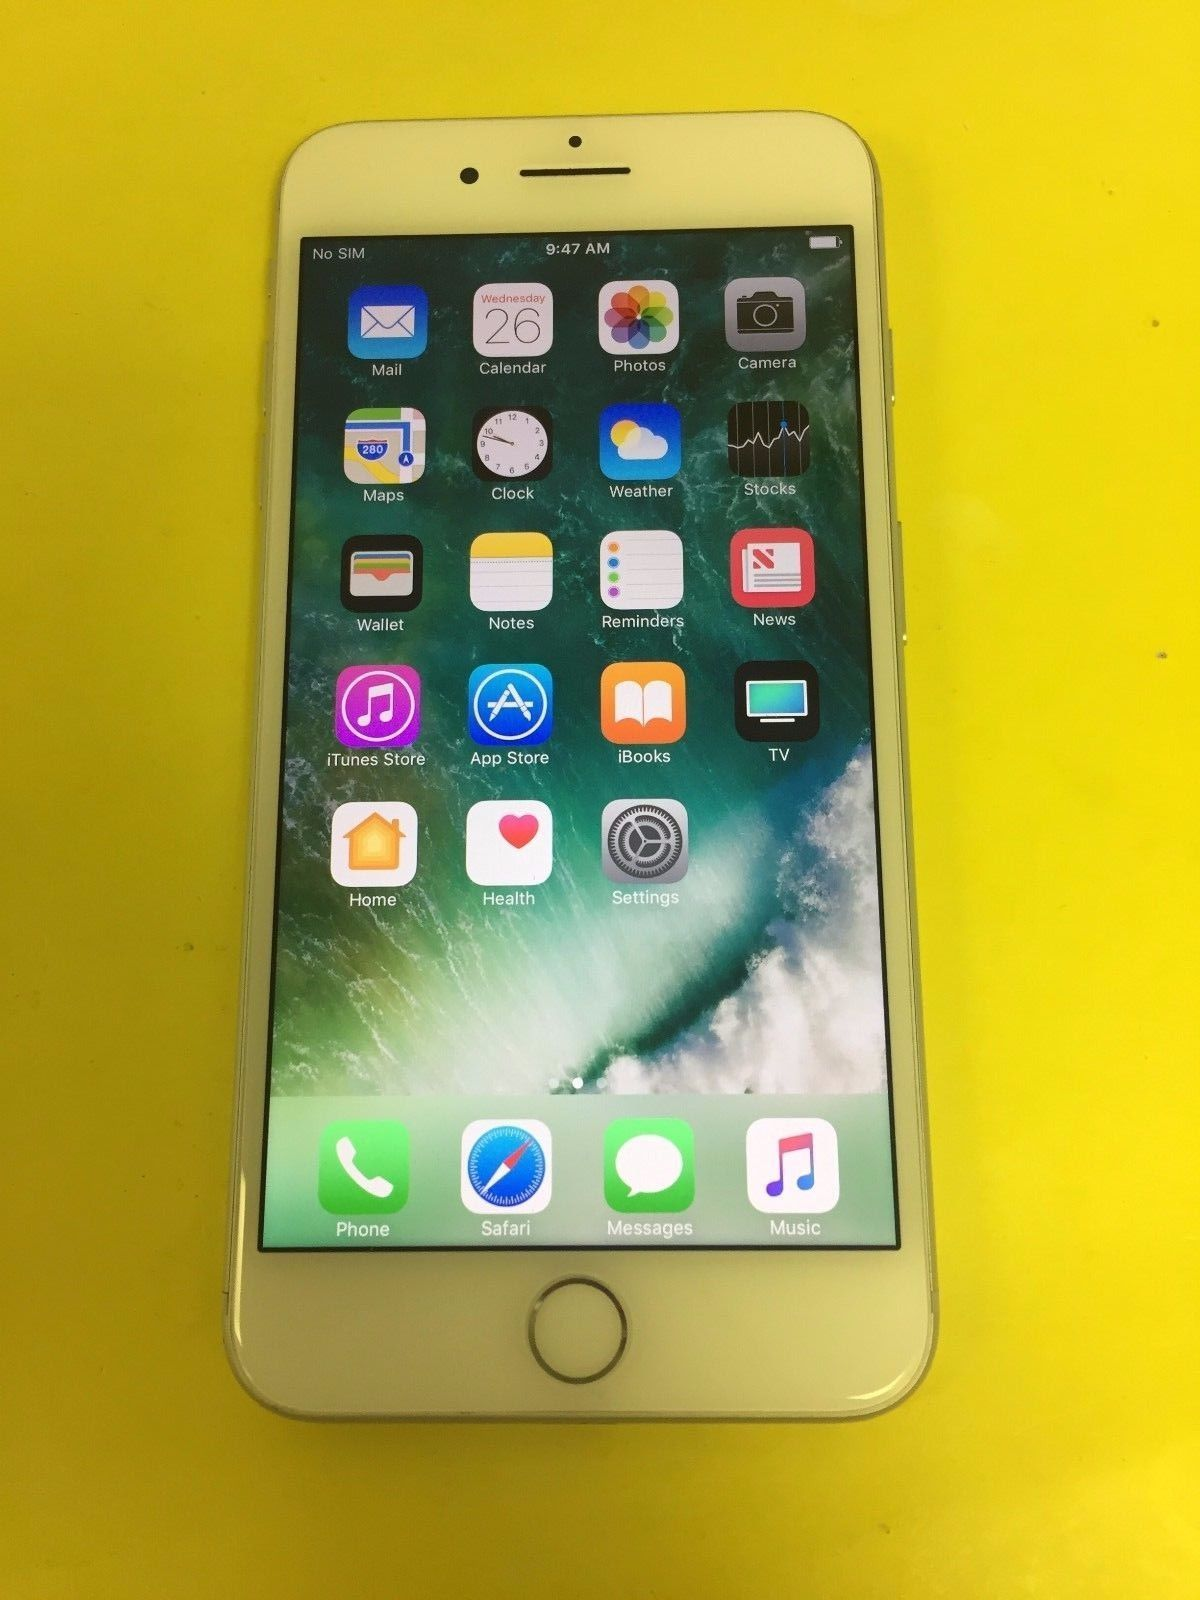 Apple iPhone 7 Plus 32GB Silver Straight Talk Great Condition eBay Link